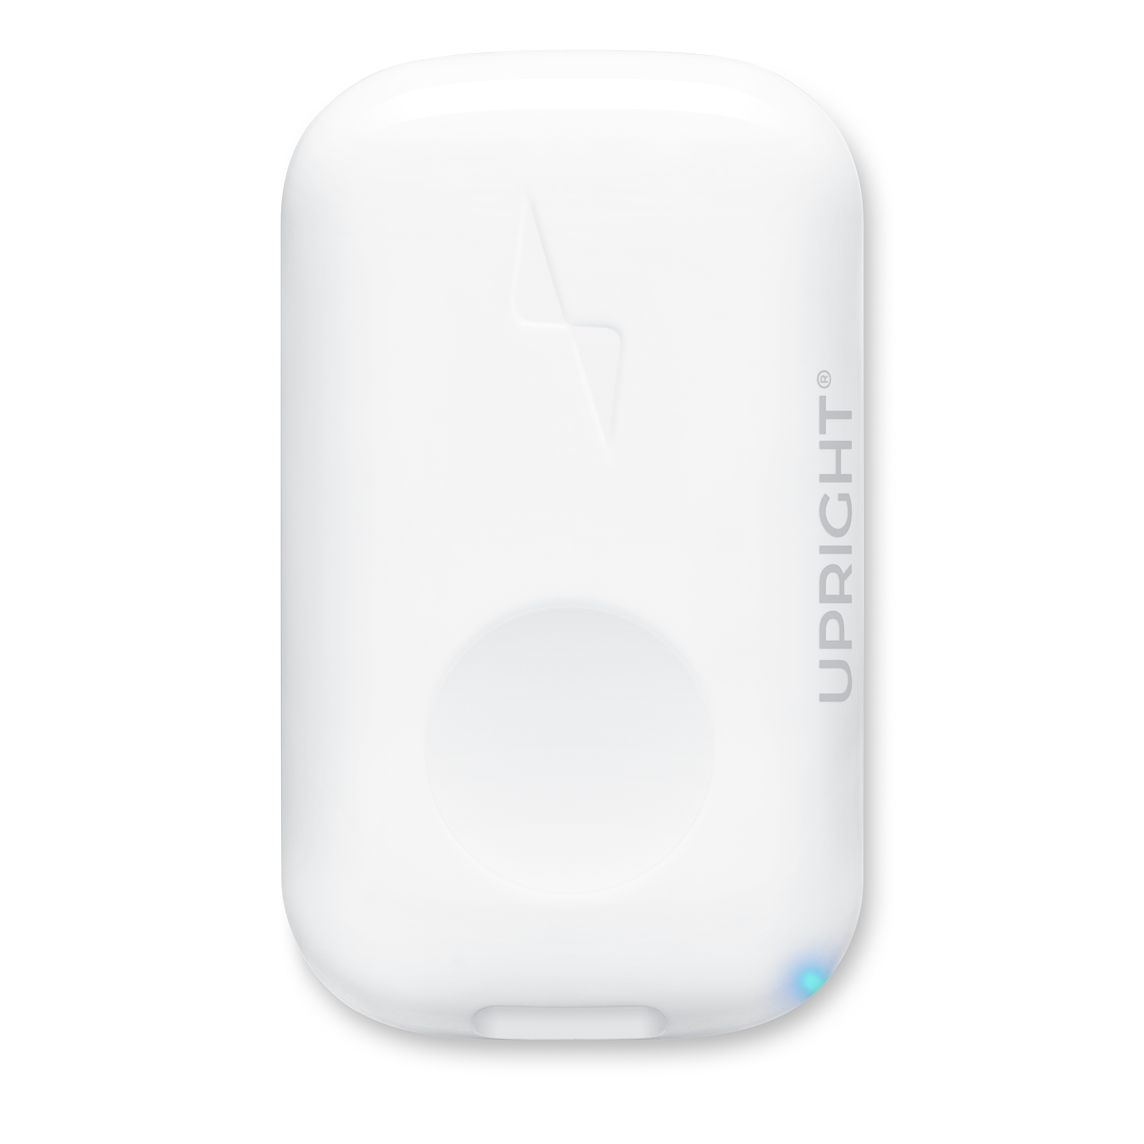 UPRIGHT GO 2 Posture Trainer - Apple (AU)